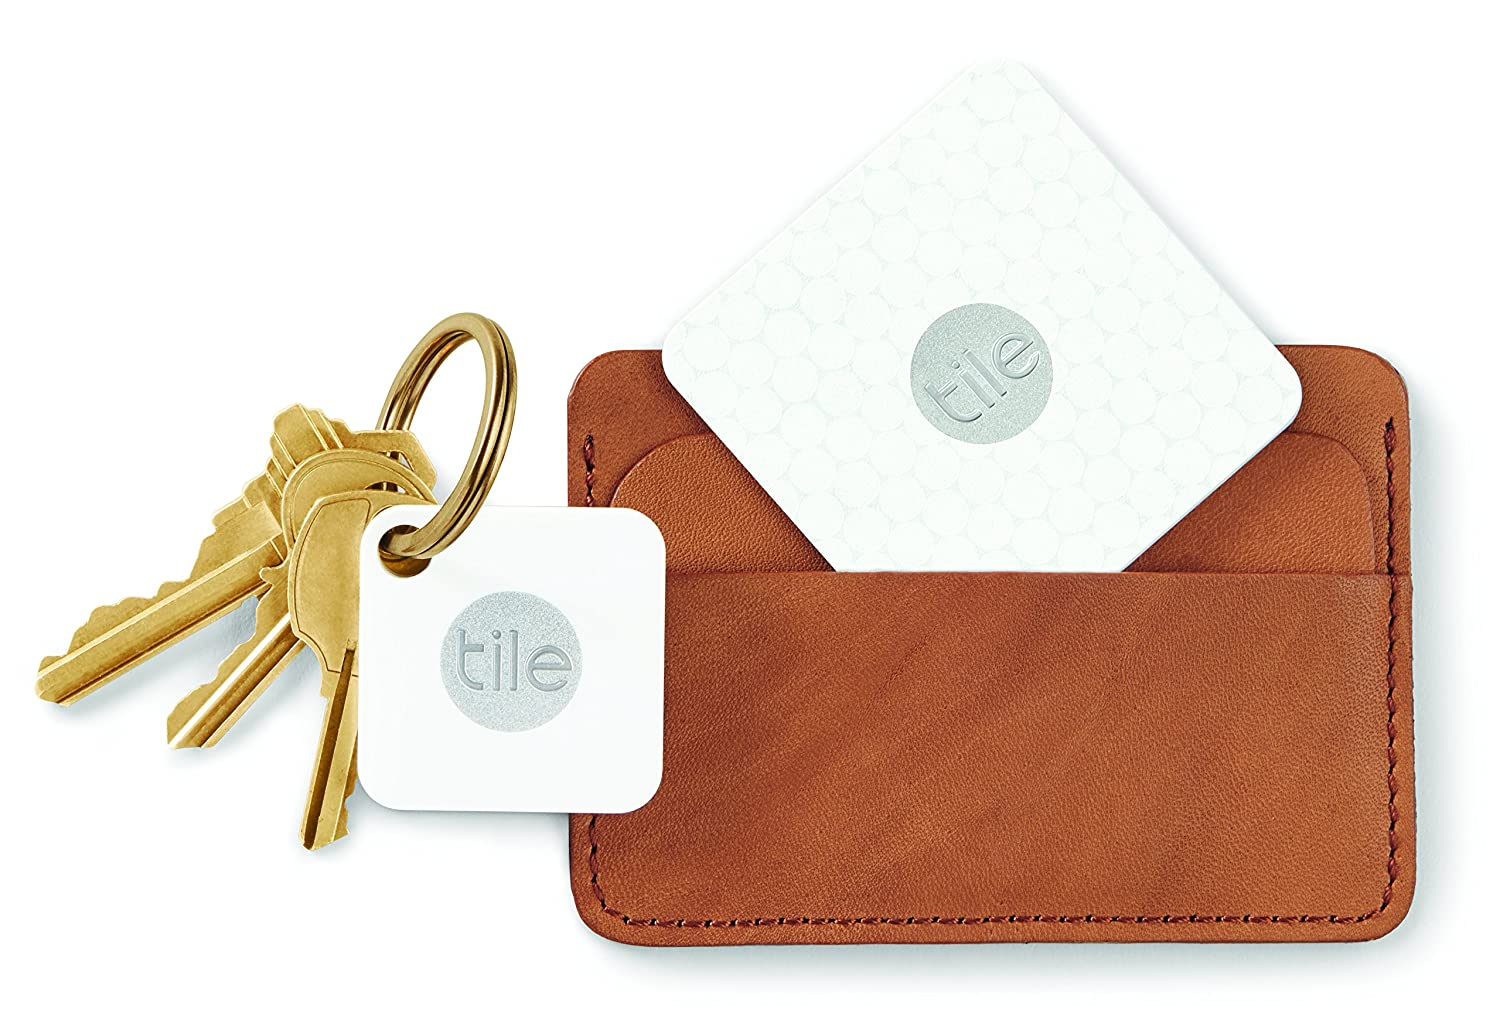 Amazon.com: Tile Mate and Slim Combo Pack - Key Finder. Phone Finder ...